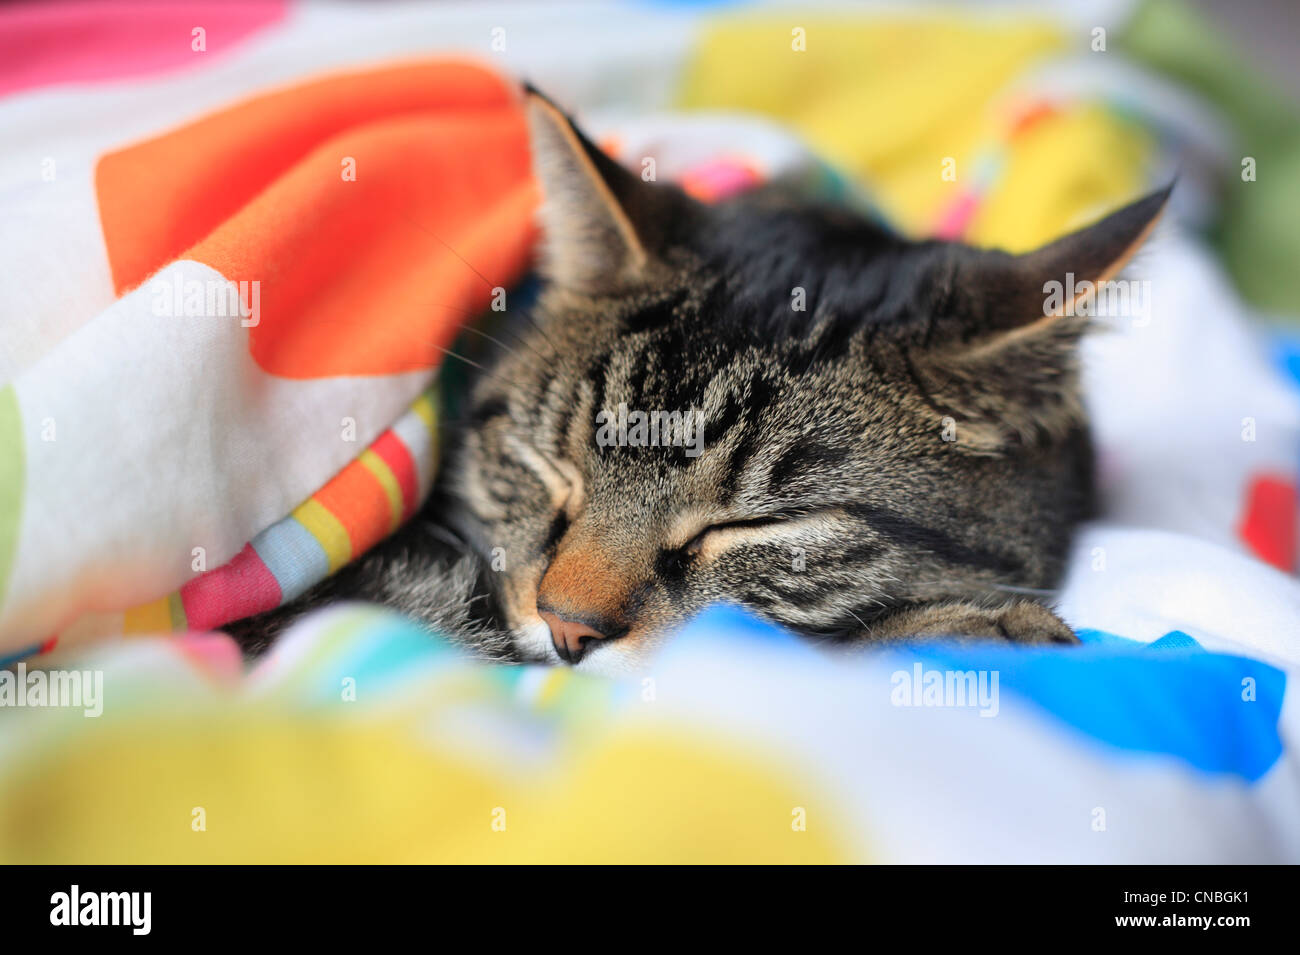 tabby kater schlafend unter einem kind bettdecke stockfoto bild 47583061 alamy. Black Bedroom Furniture Sets. Home Design Ideas